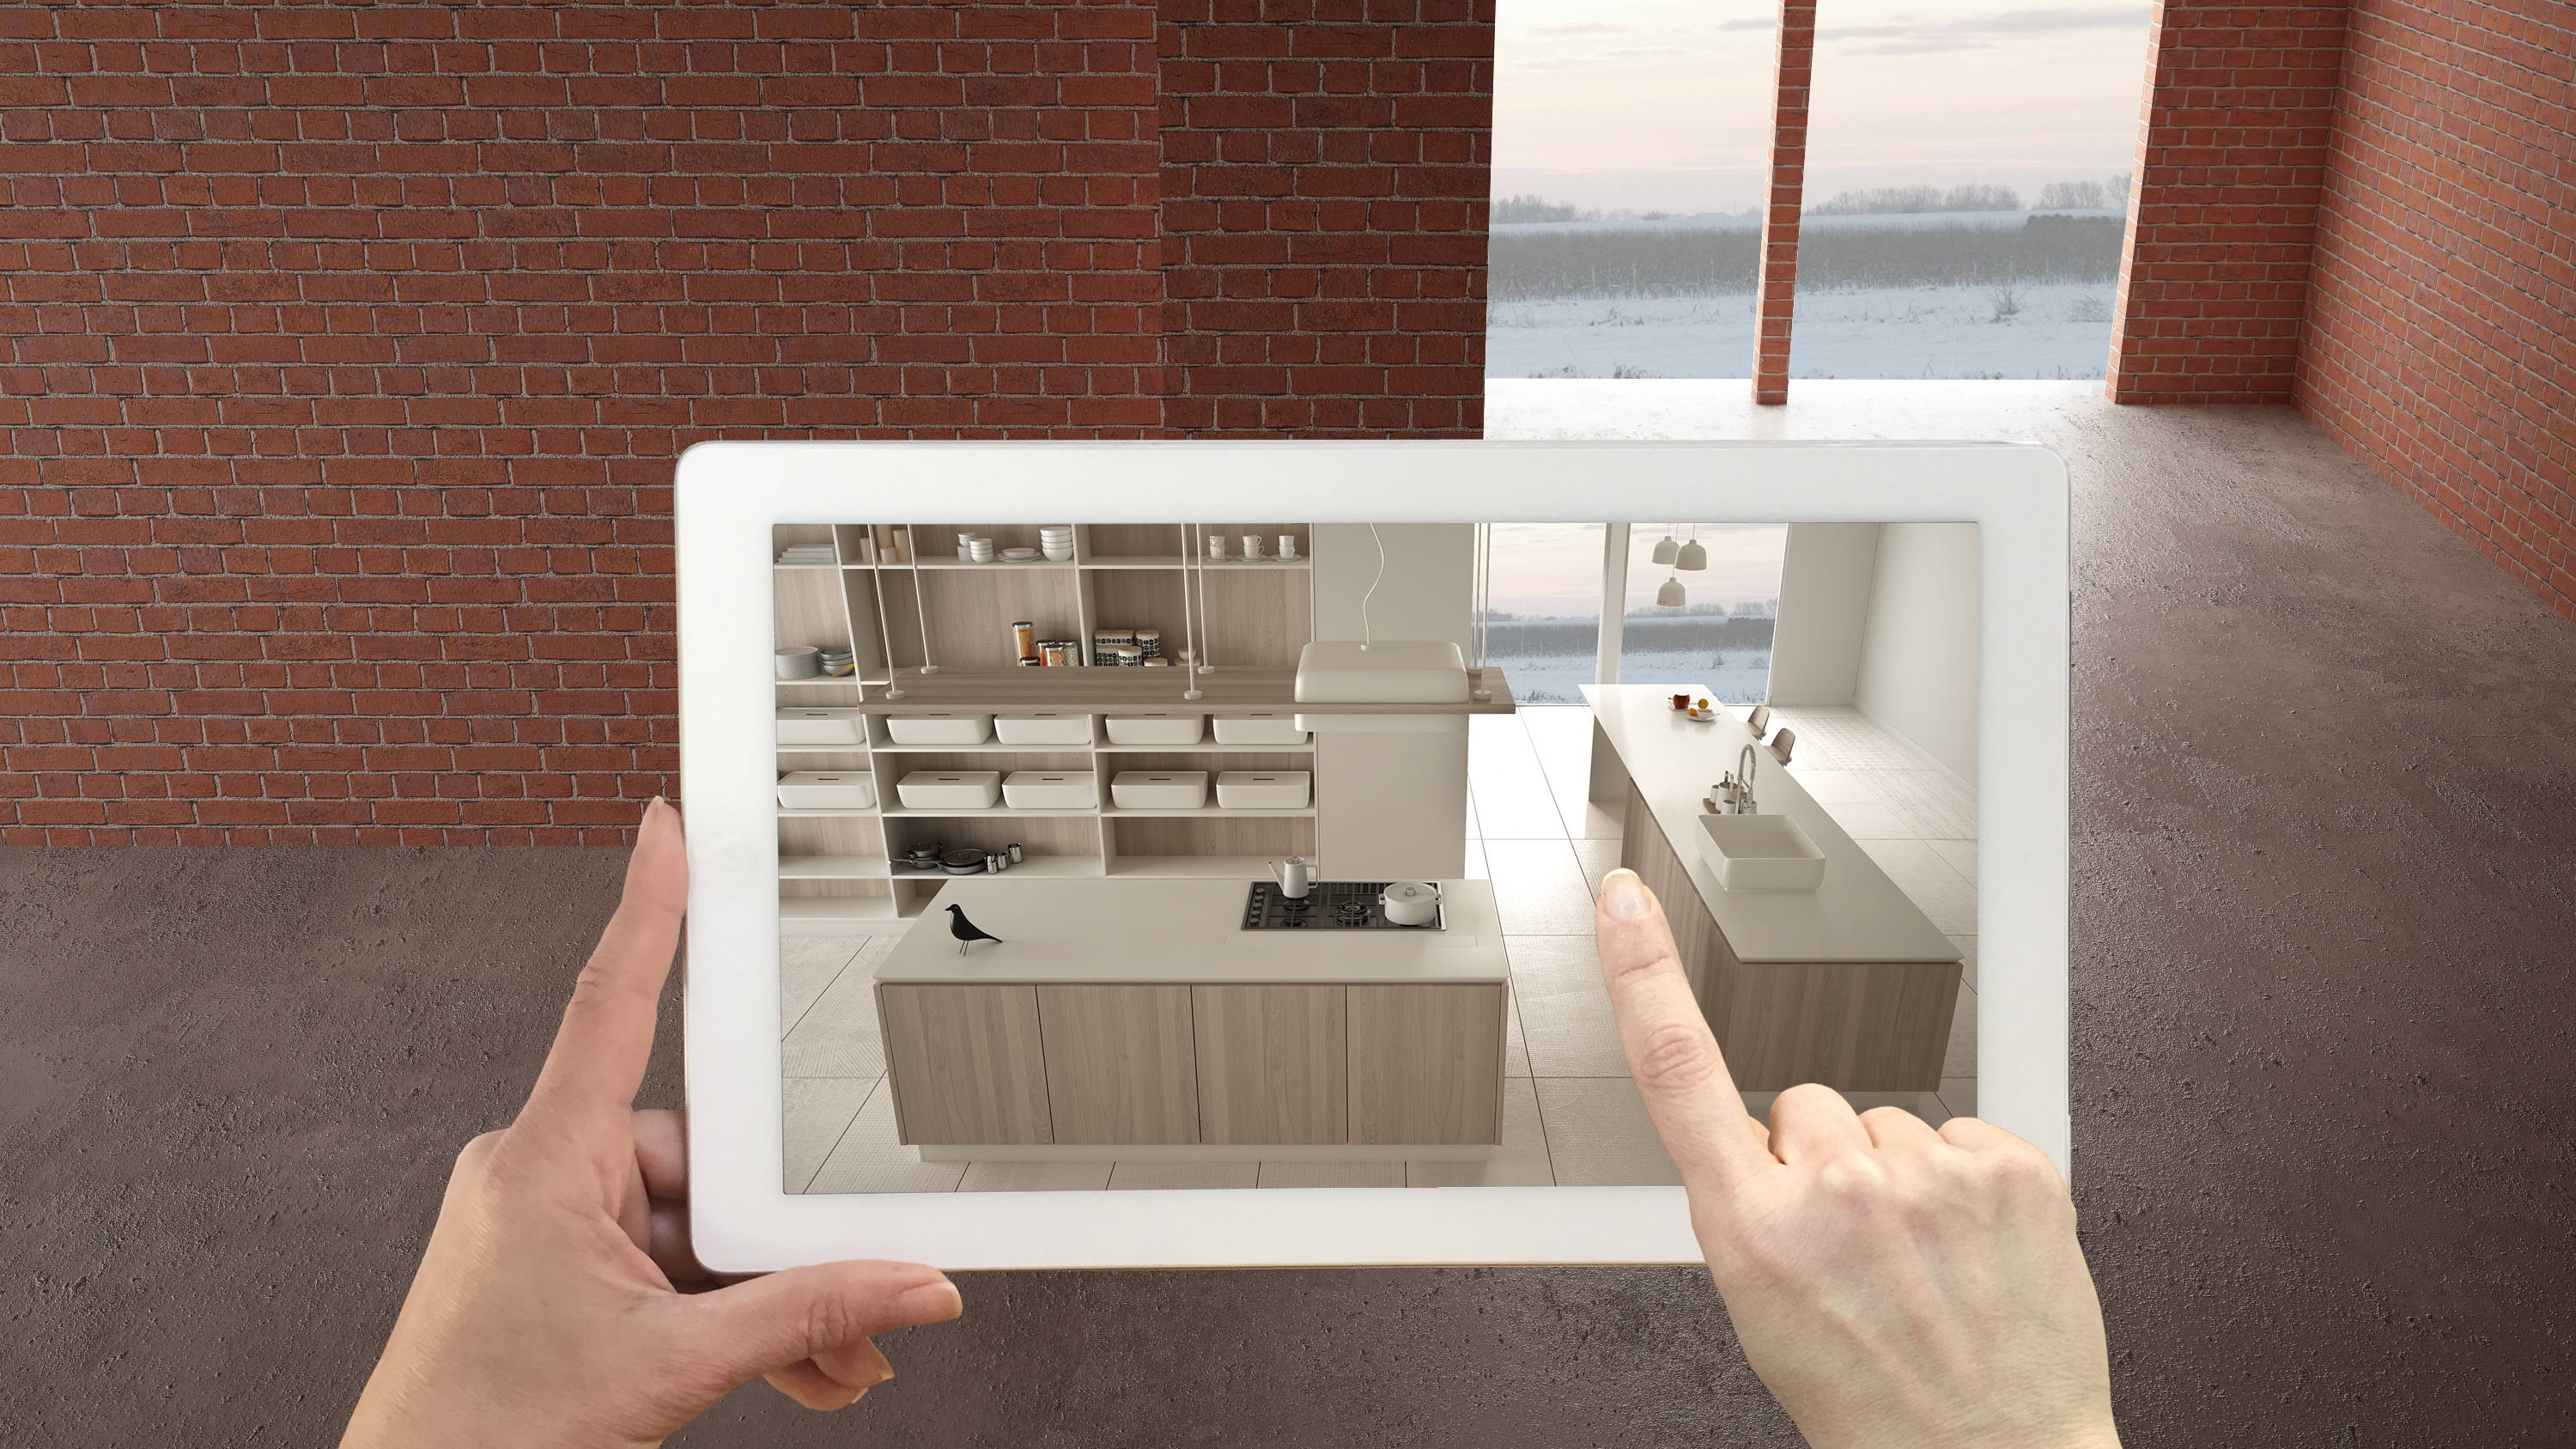 ar-and-the-advancements-in-advertising-and-media